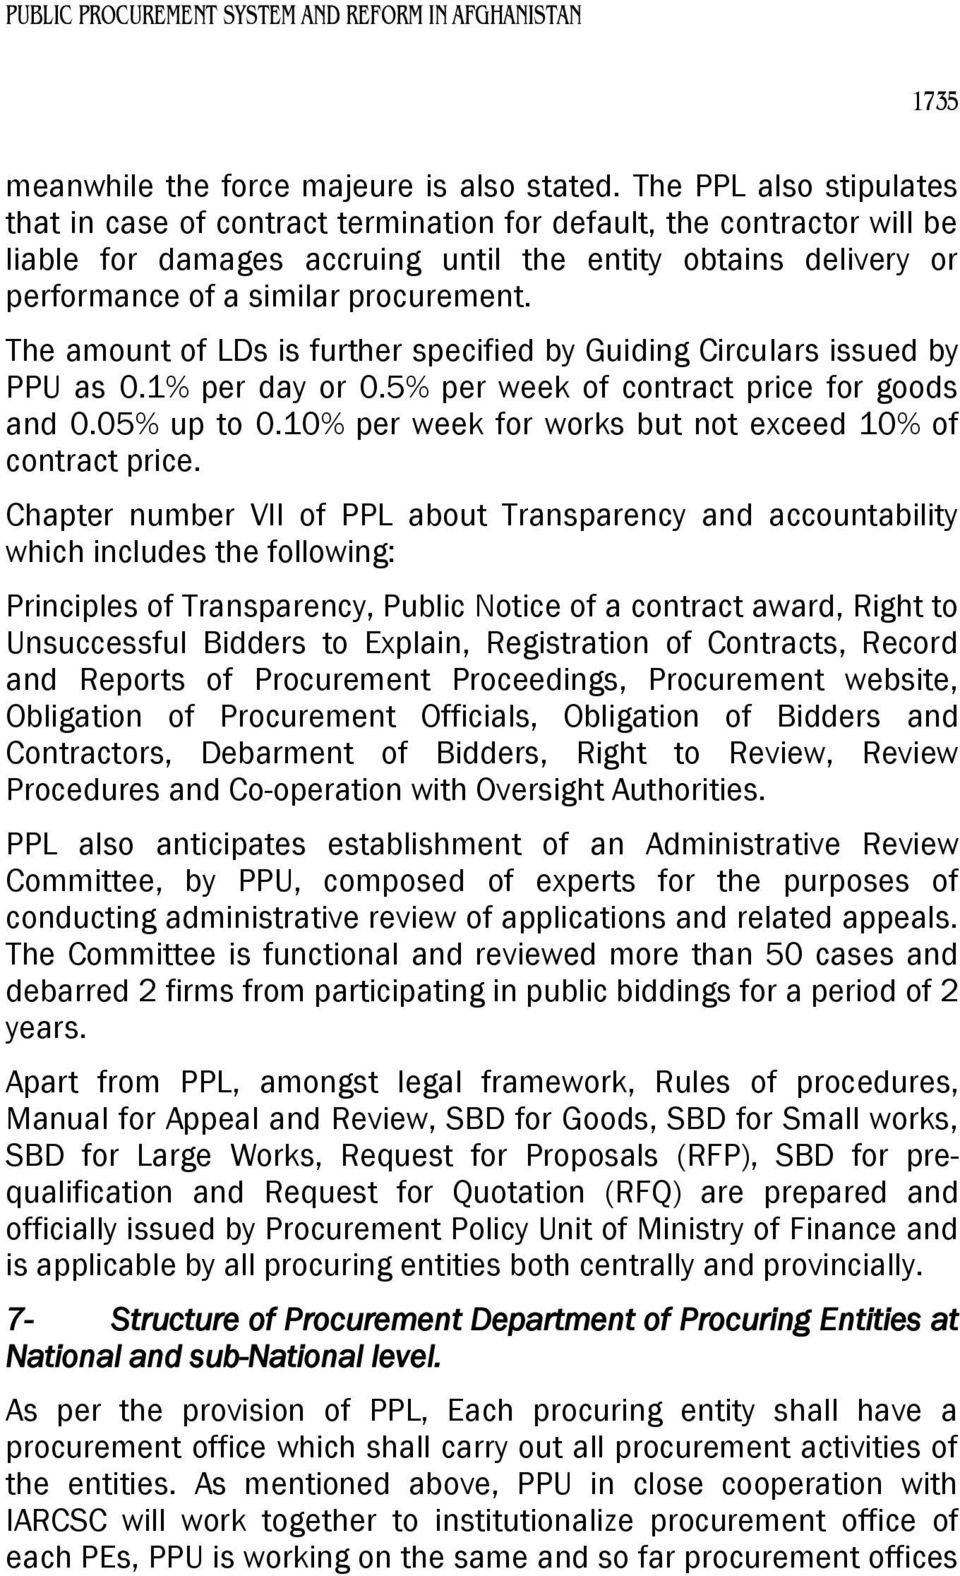 The amount of LDs is further specified by Guiding Circulars issued by PPU as 0.1% per day or 0.5% per week of contract price for goods and 0.05% up to 0.